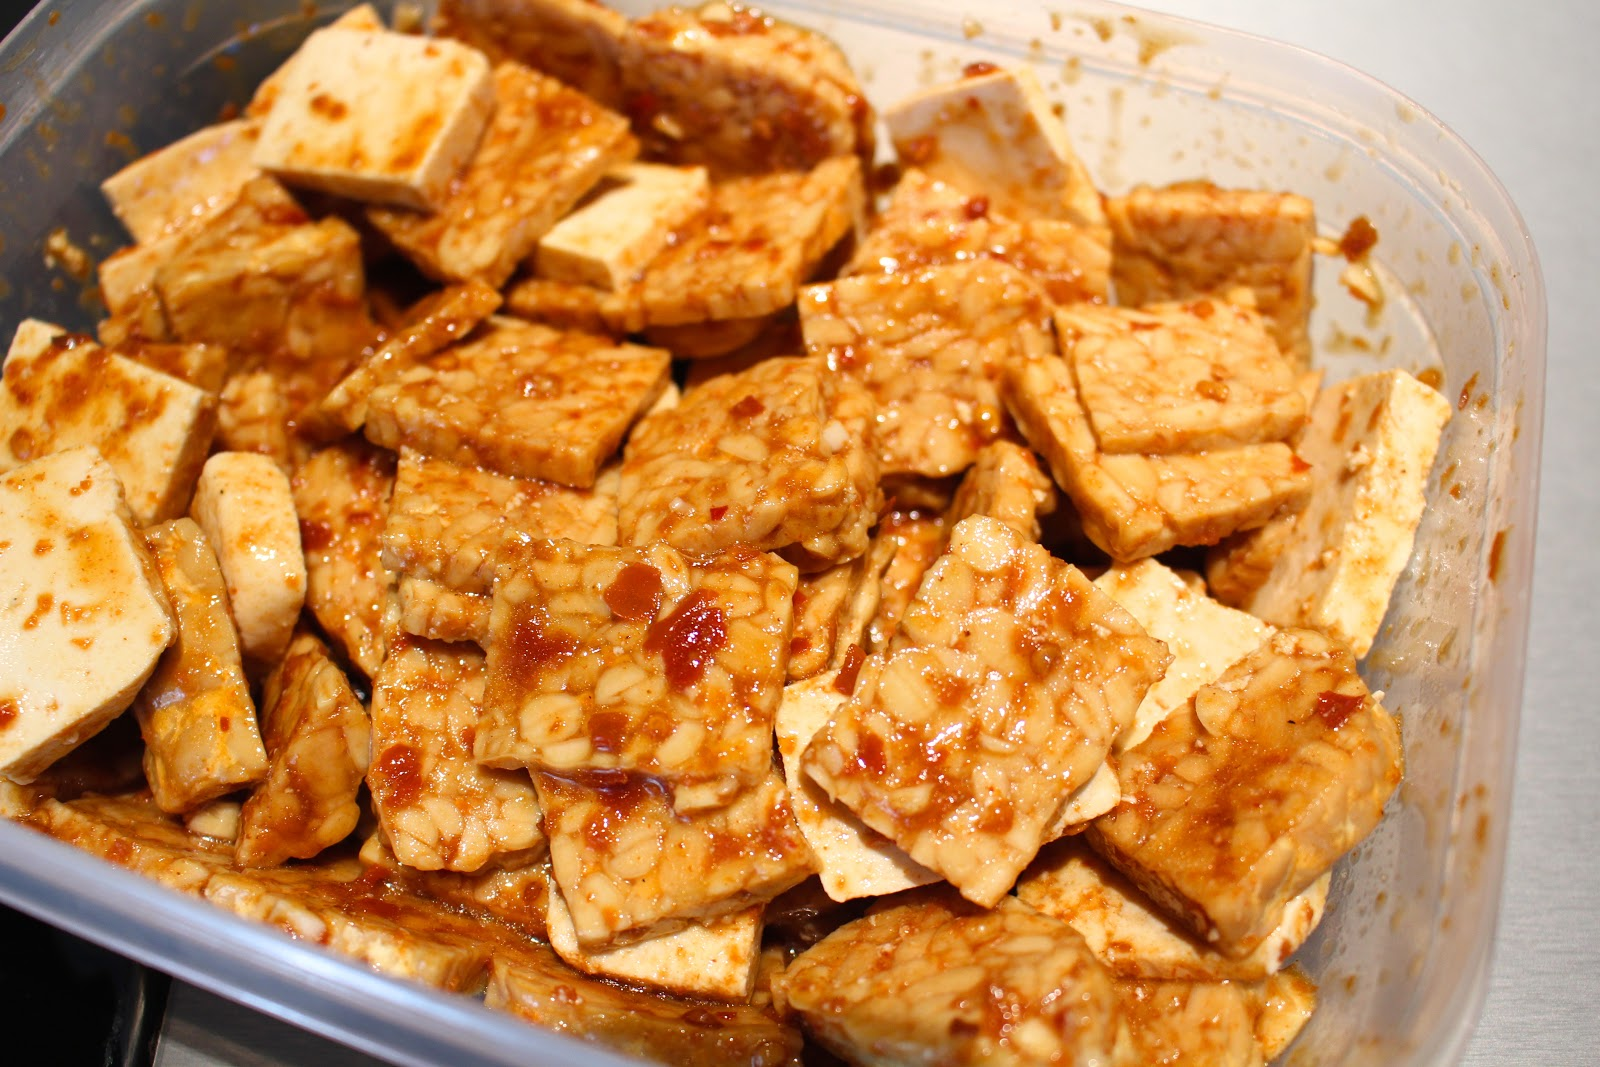 The best spicy tempeh and tofu marinade